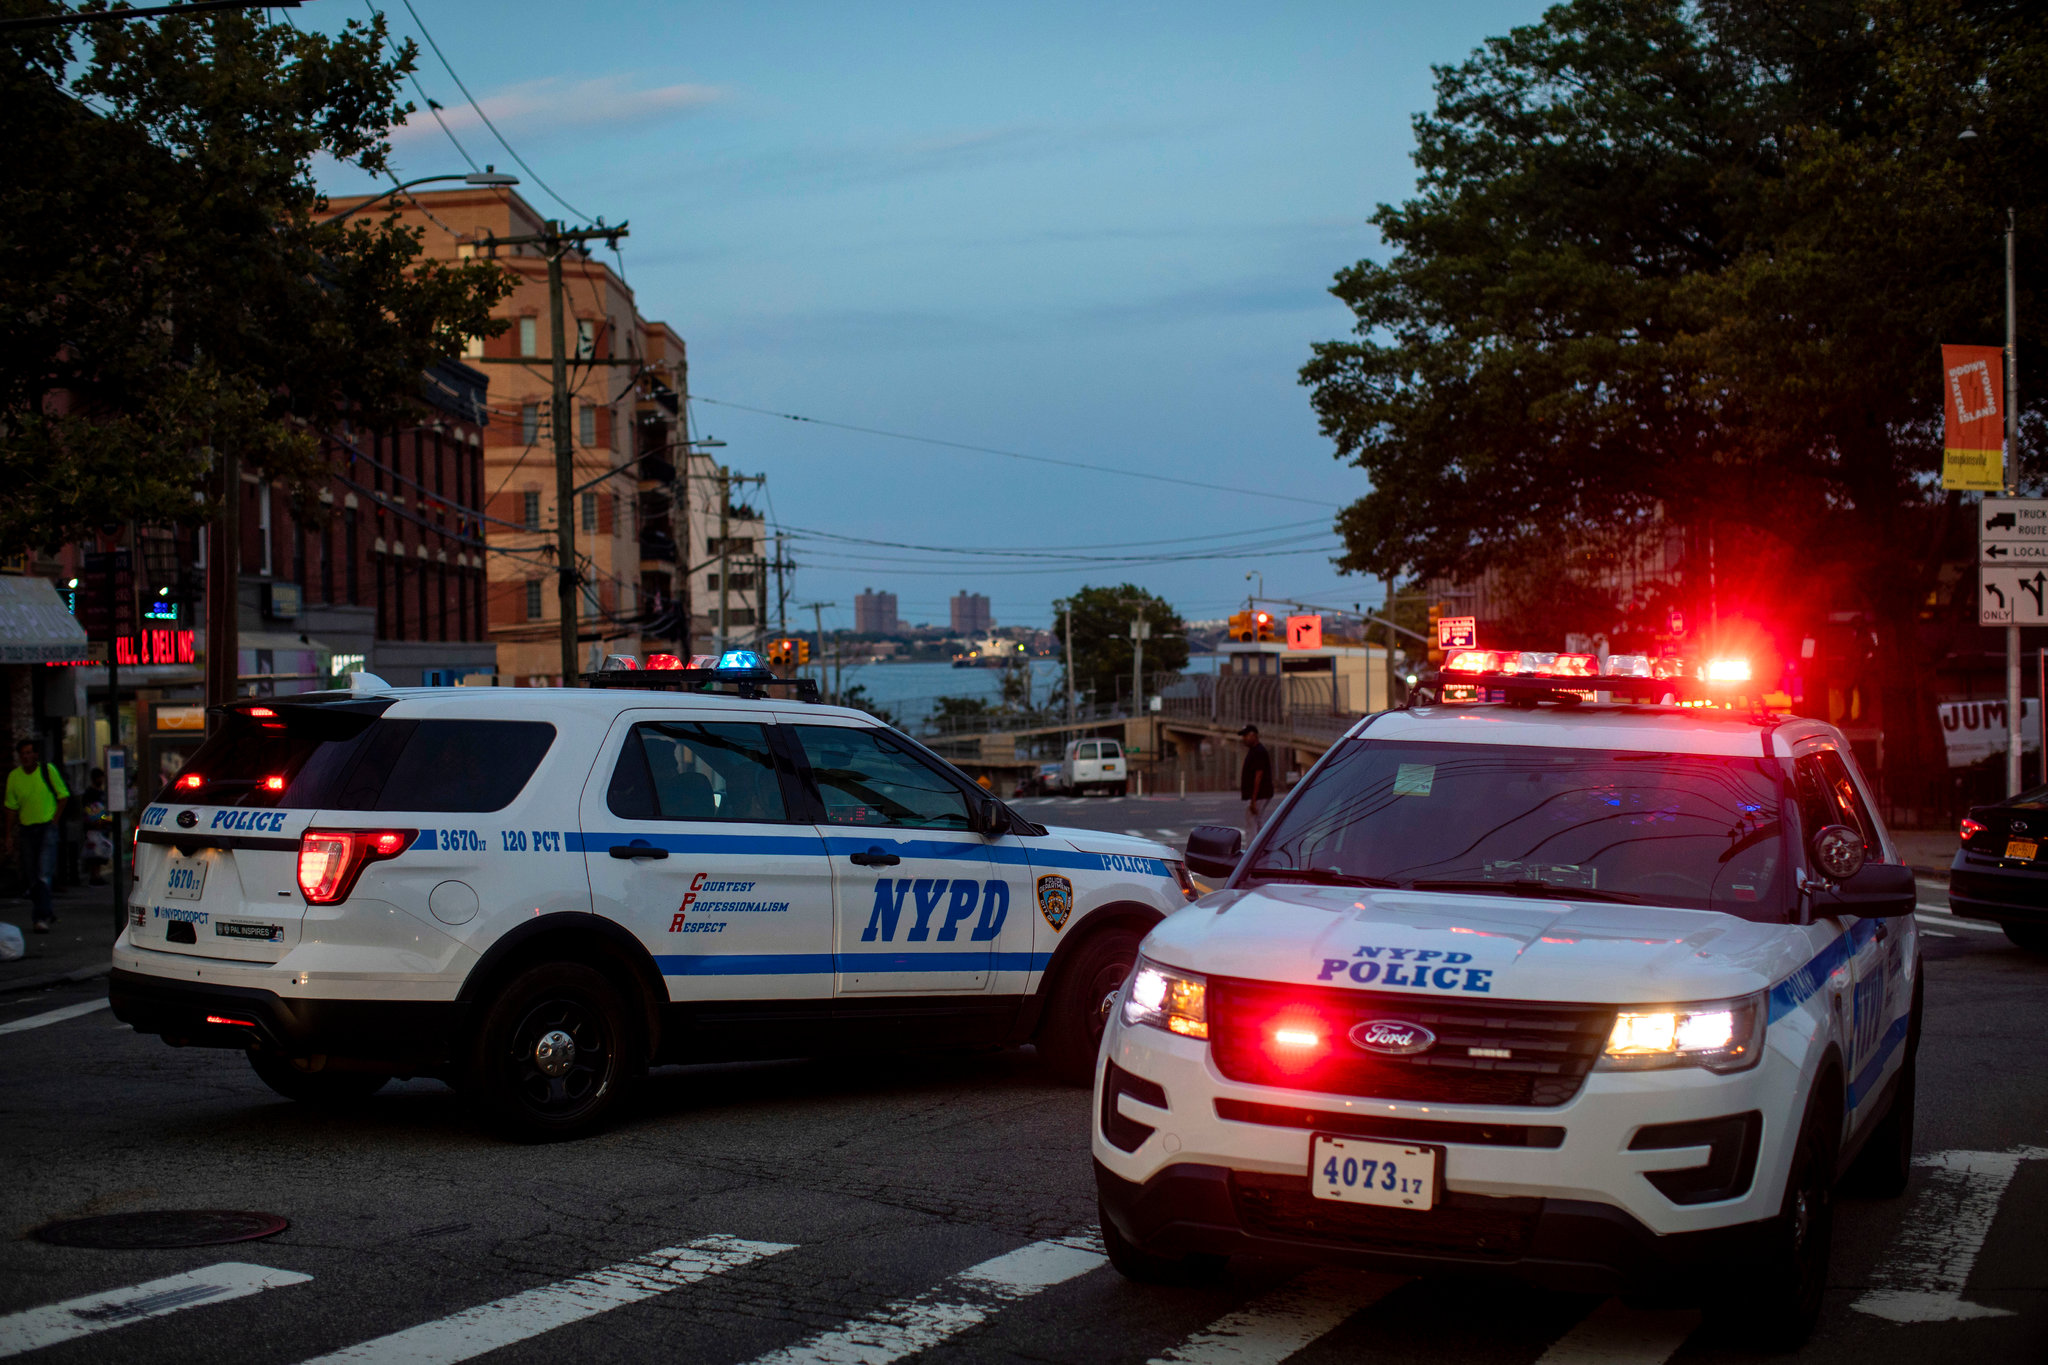 NYPD Rumored to Strike on 4th of July to 'Let the City Have Independence Without Cops'